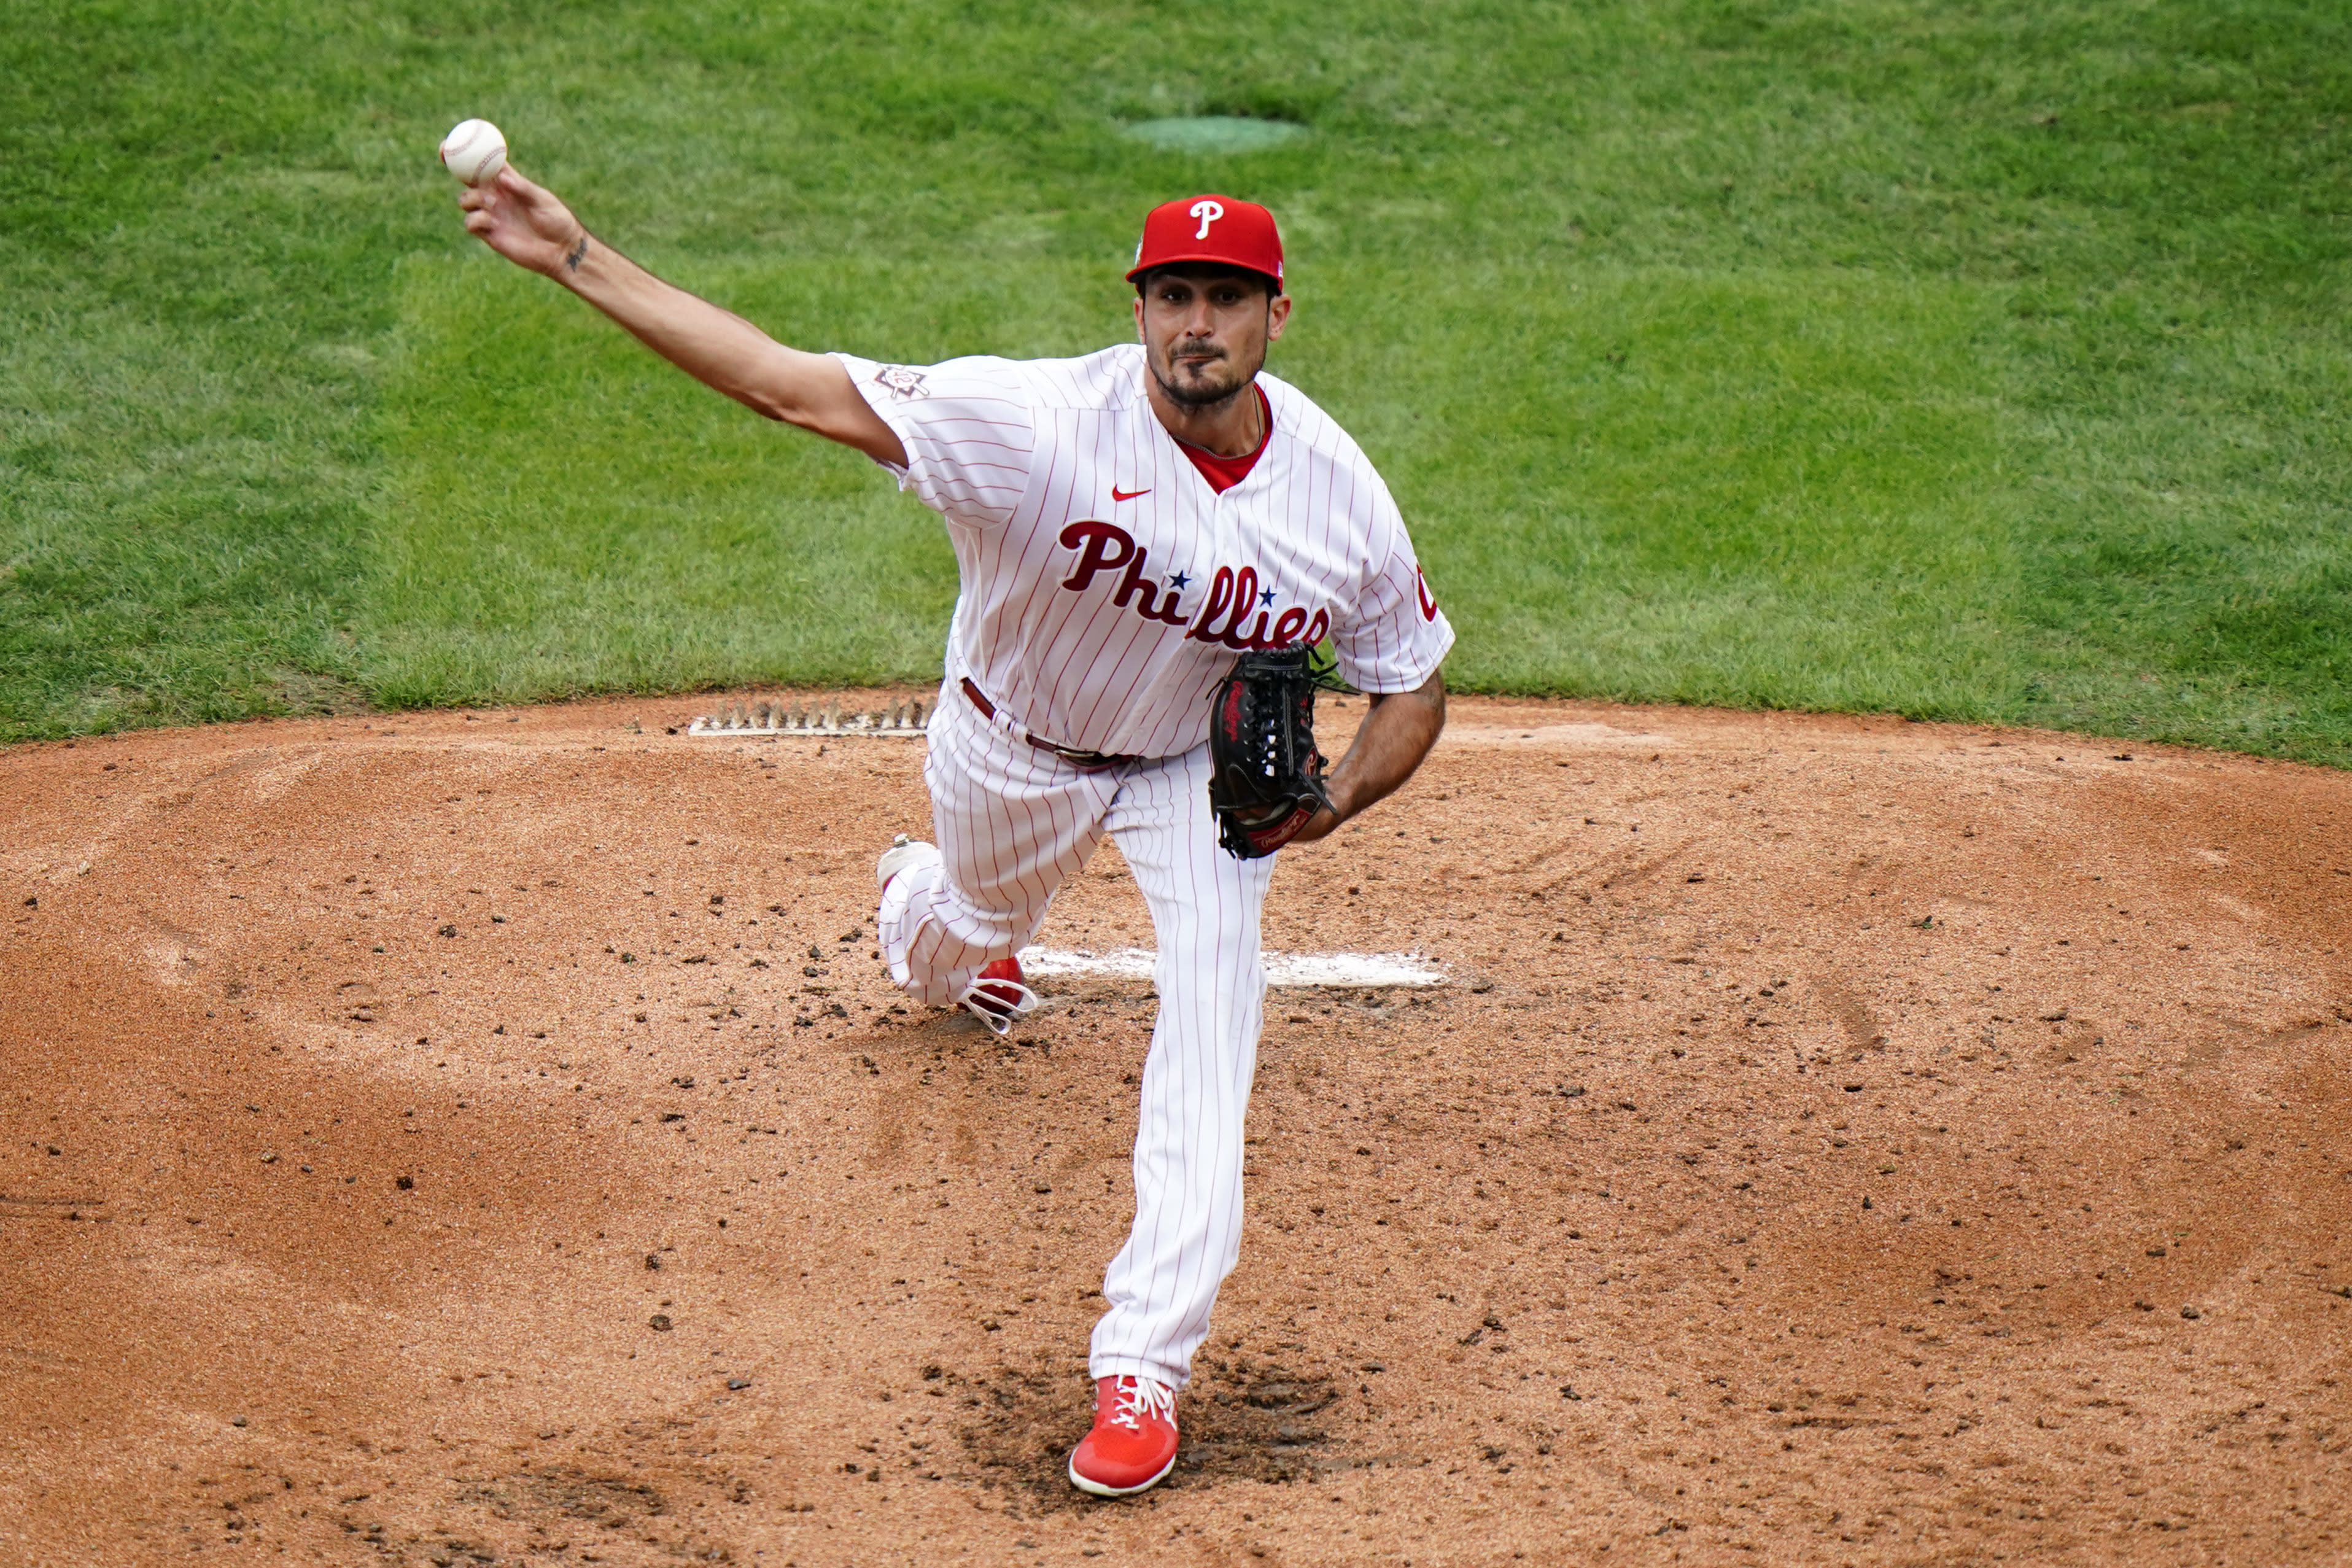 Philadelphia Phillies' Zach Eflin pitches during the third inning of a baseball game against the Atlanta Braves, Saturday, Aug. 29, 2020, in Philadelphia. (AP Photo/Matt Slocum)